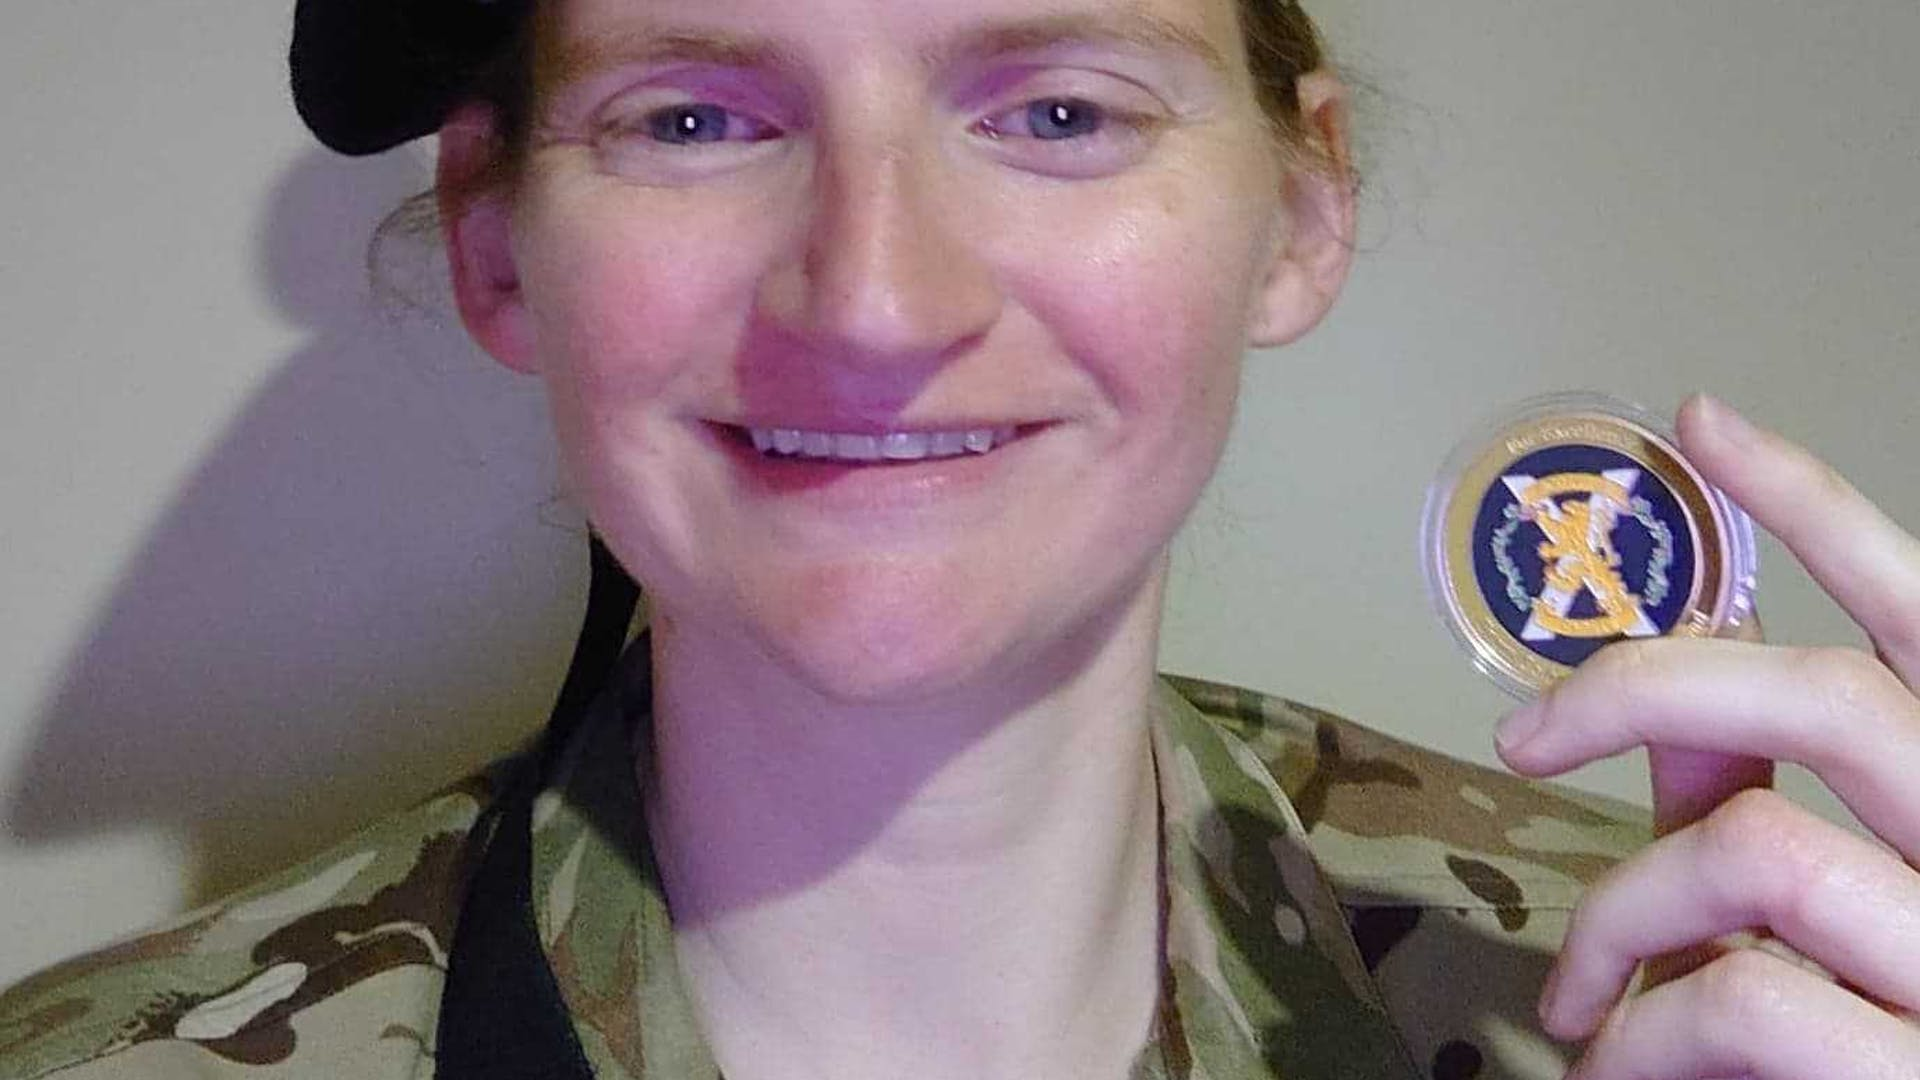 Lt Browne with her Colonel Cadets Coin